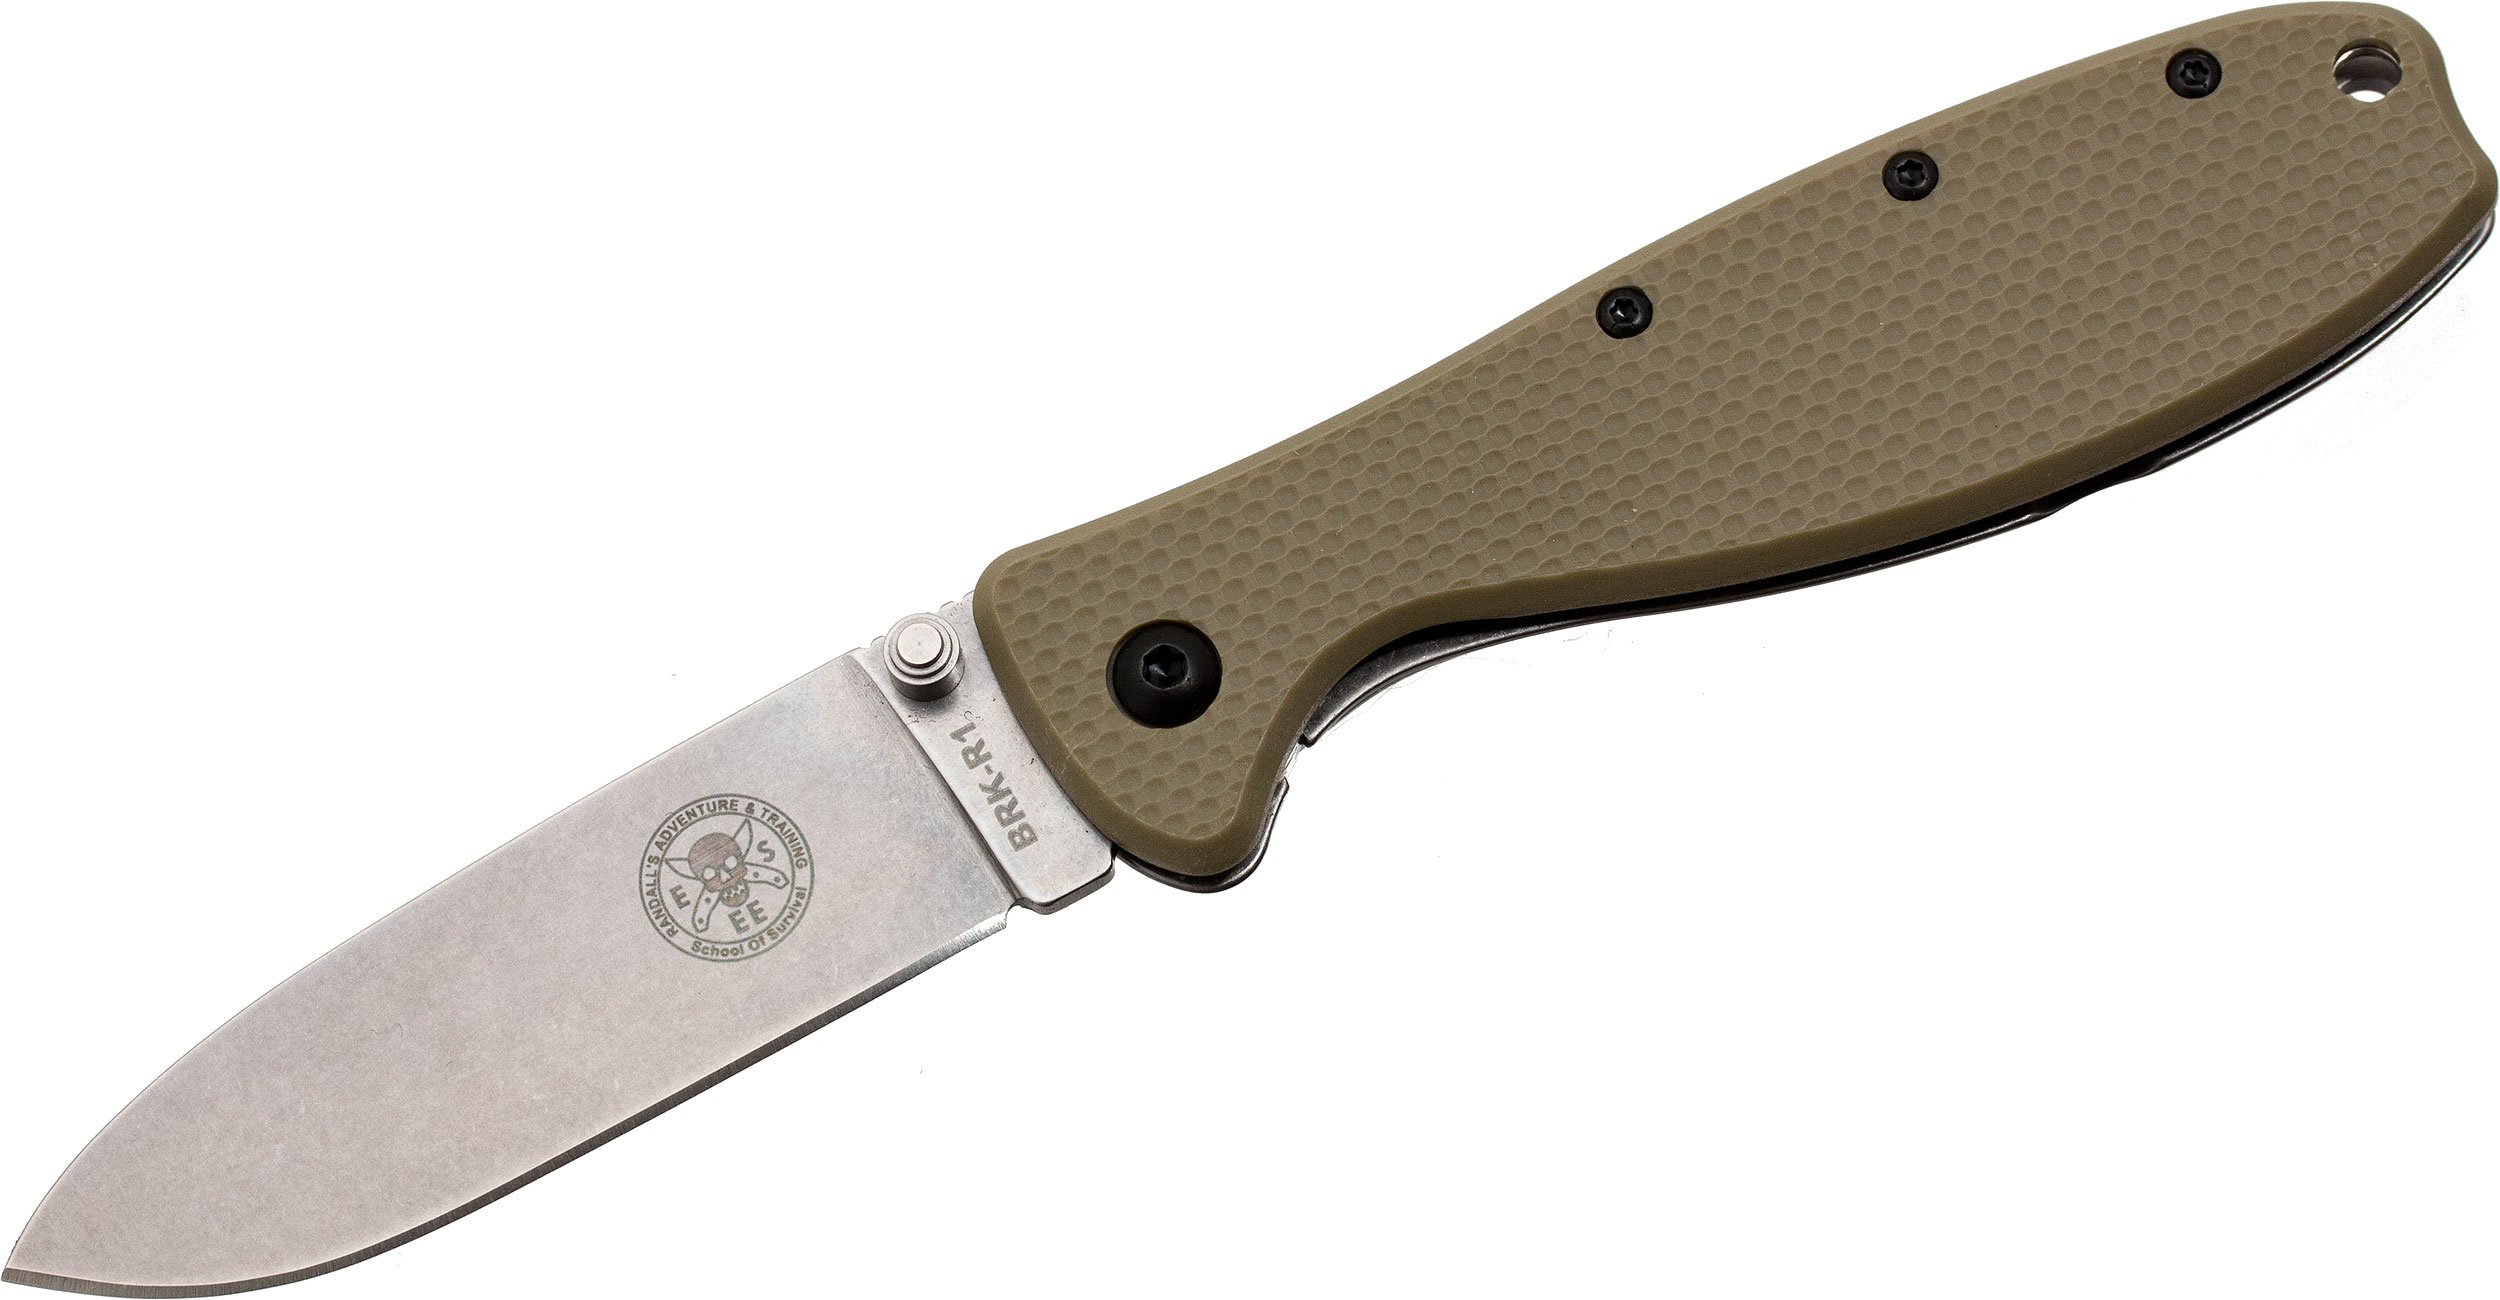 Zancudo Folding Knife 3 inch Stonewashed Blade, Desert Tan FRN and Stainless Steel Handles, Designed by ESEE